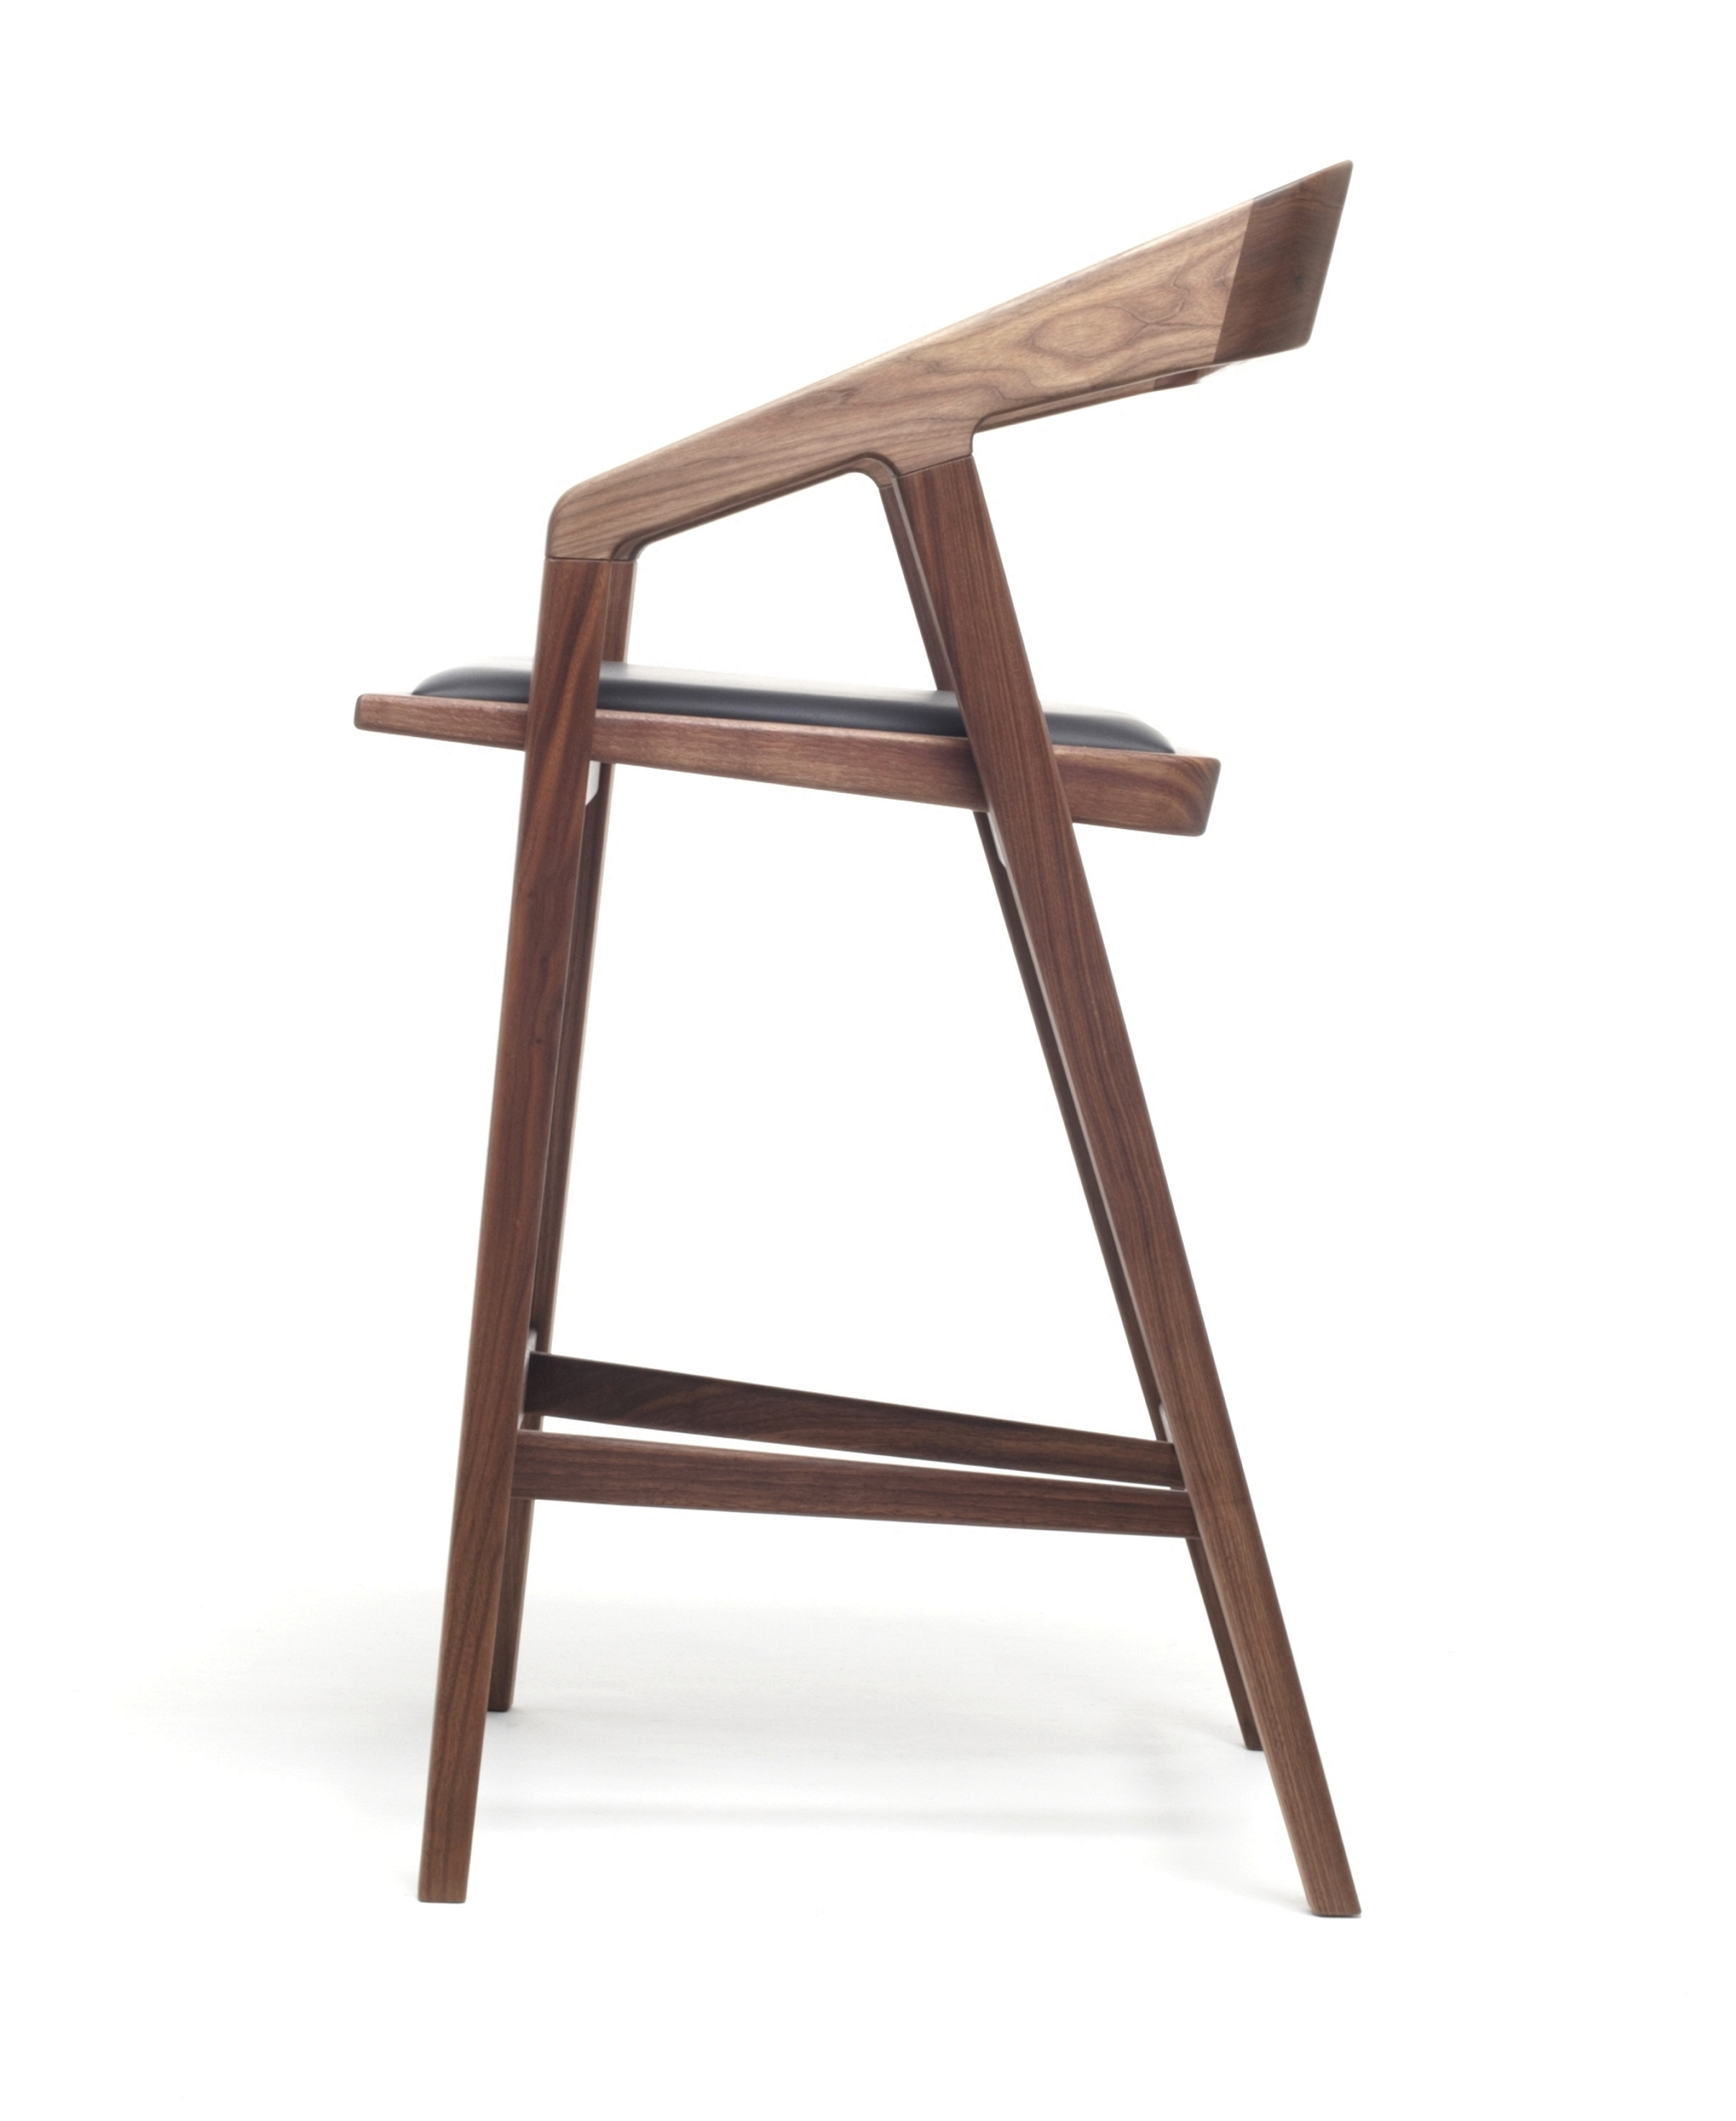 KATAKANA Tabouret by Dare Studio design Sean  # Tabouret De Bar Design Bois